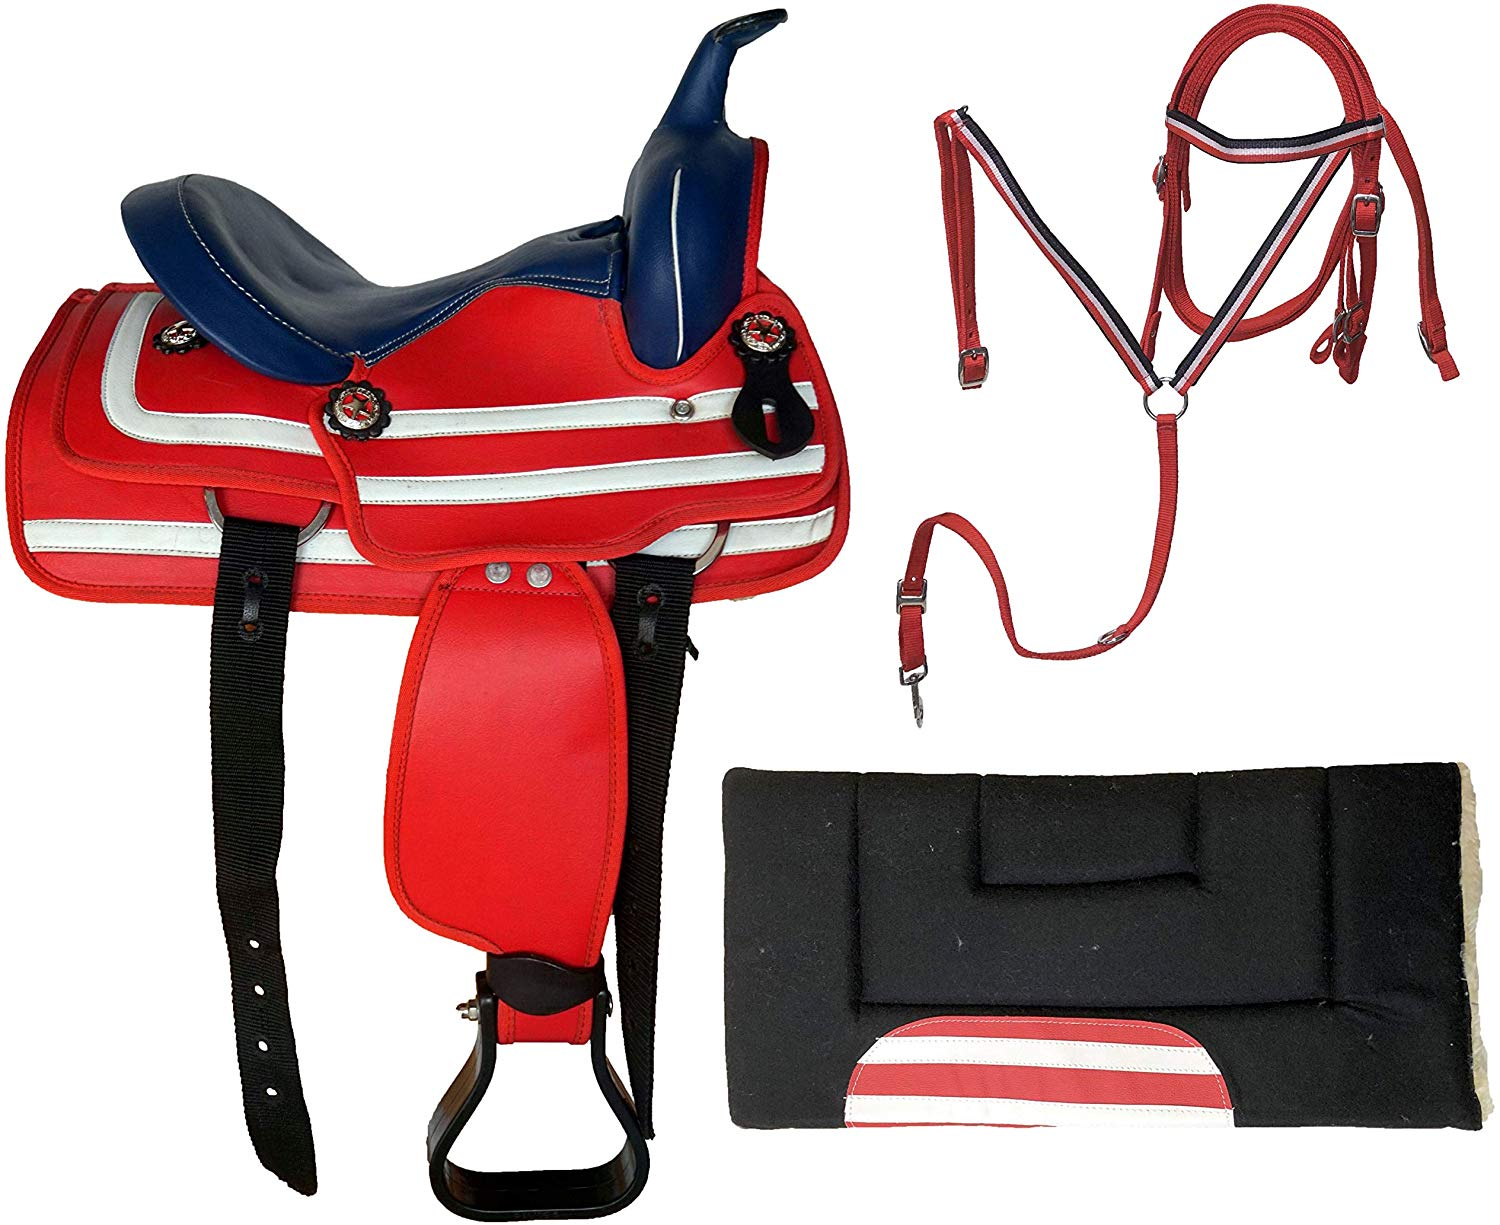 Equitem 13 Western Red White Blue Patriotic Synthetic Saddle With Blue Smooth Seat With Matching Headstall Breastcollar And Pad Thesaddles Com